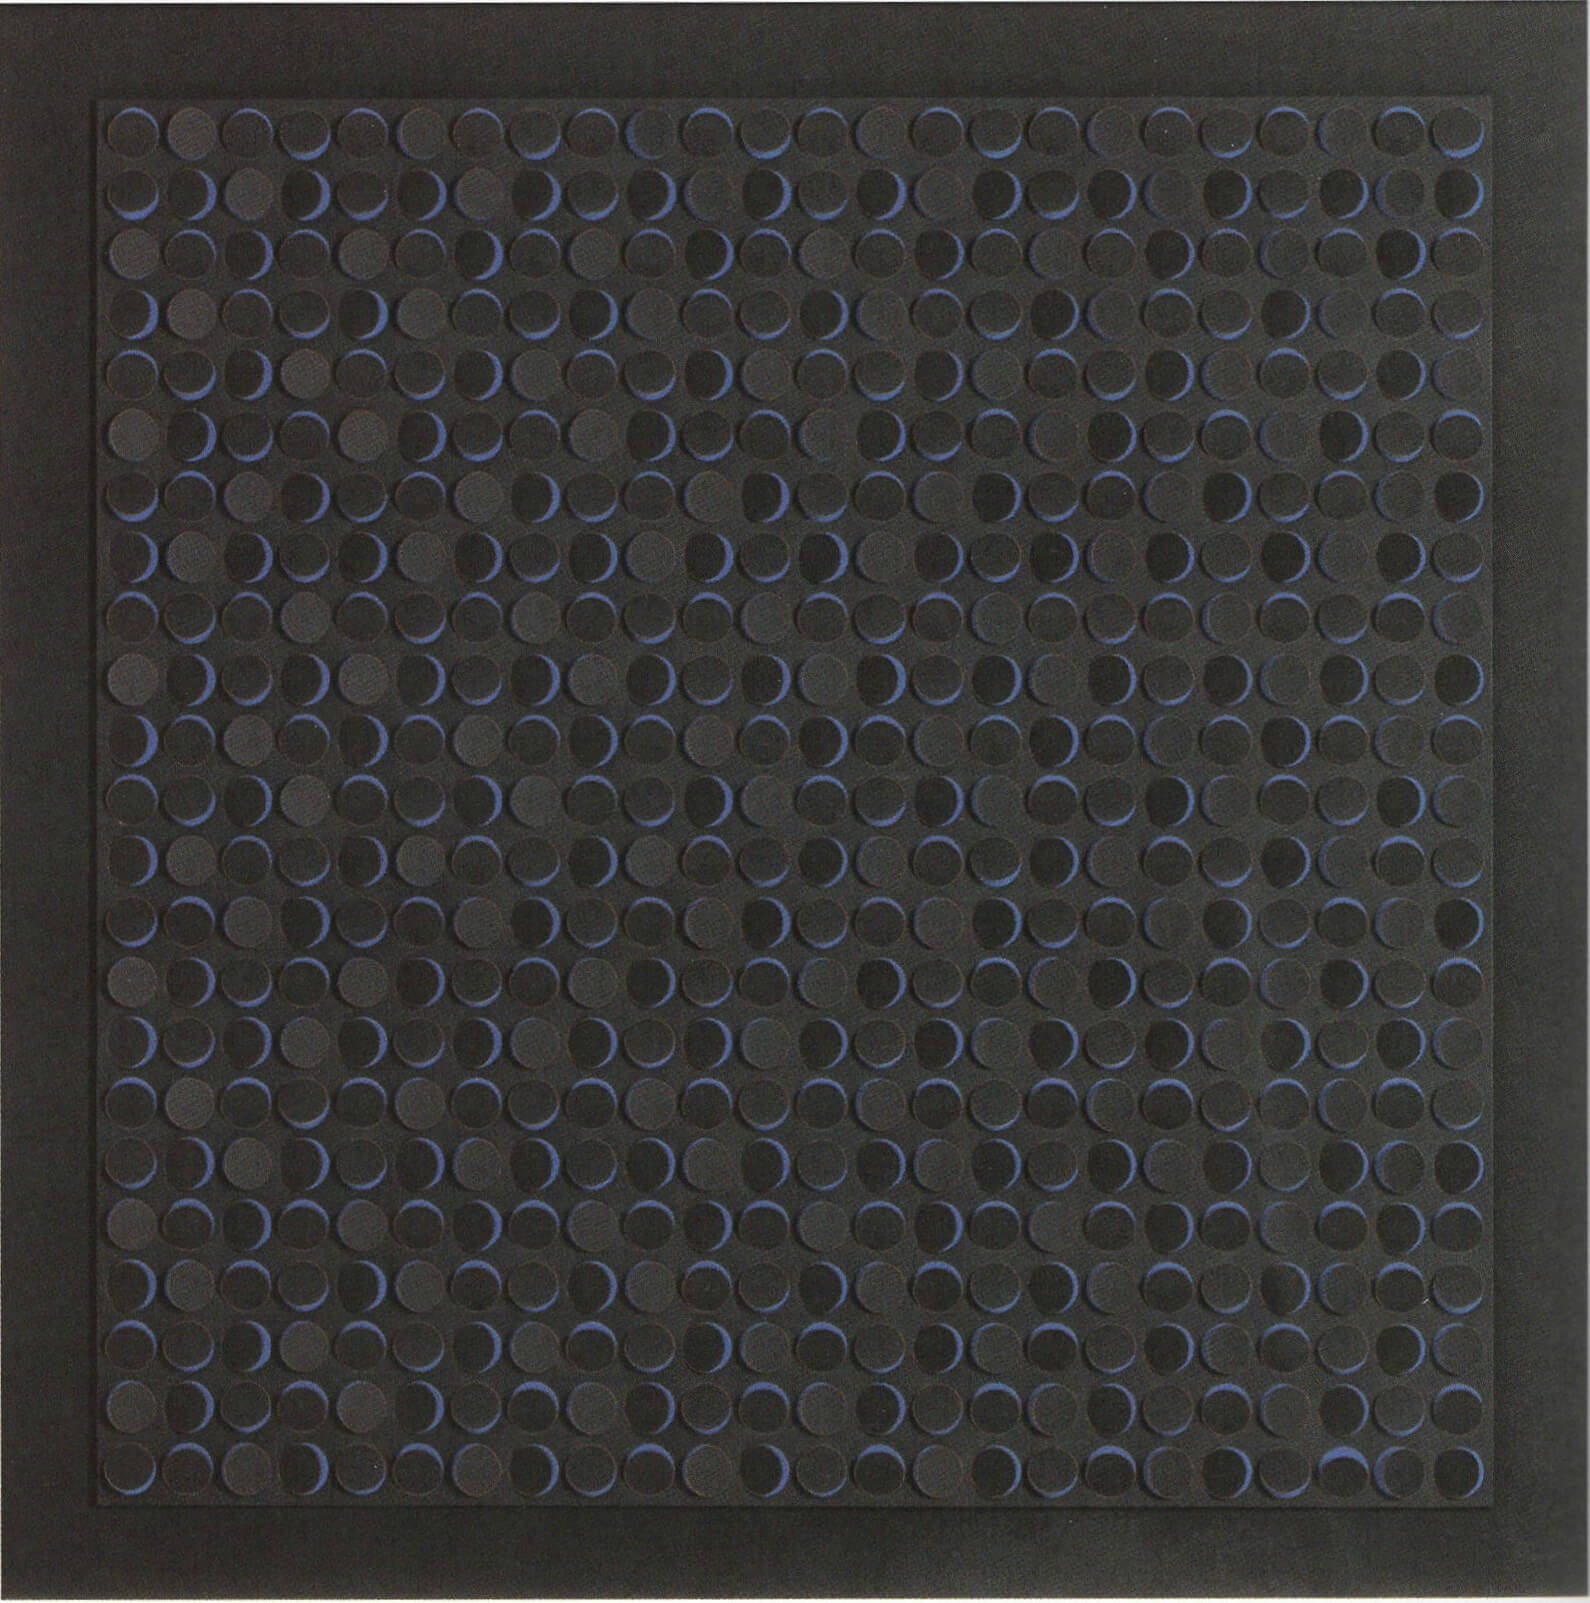 Light interference surface on blue, 1996